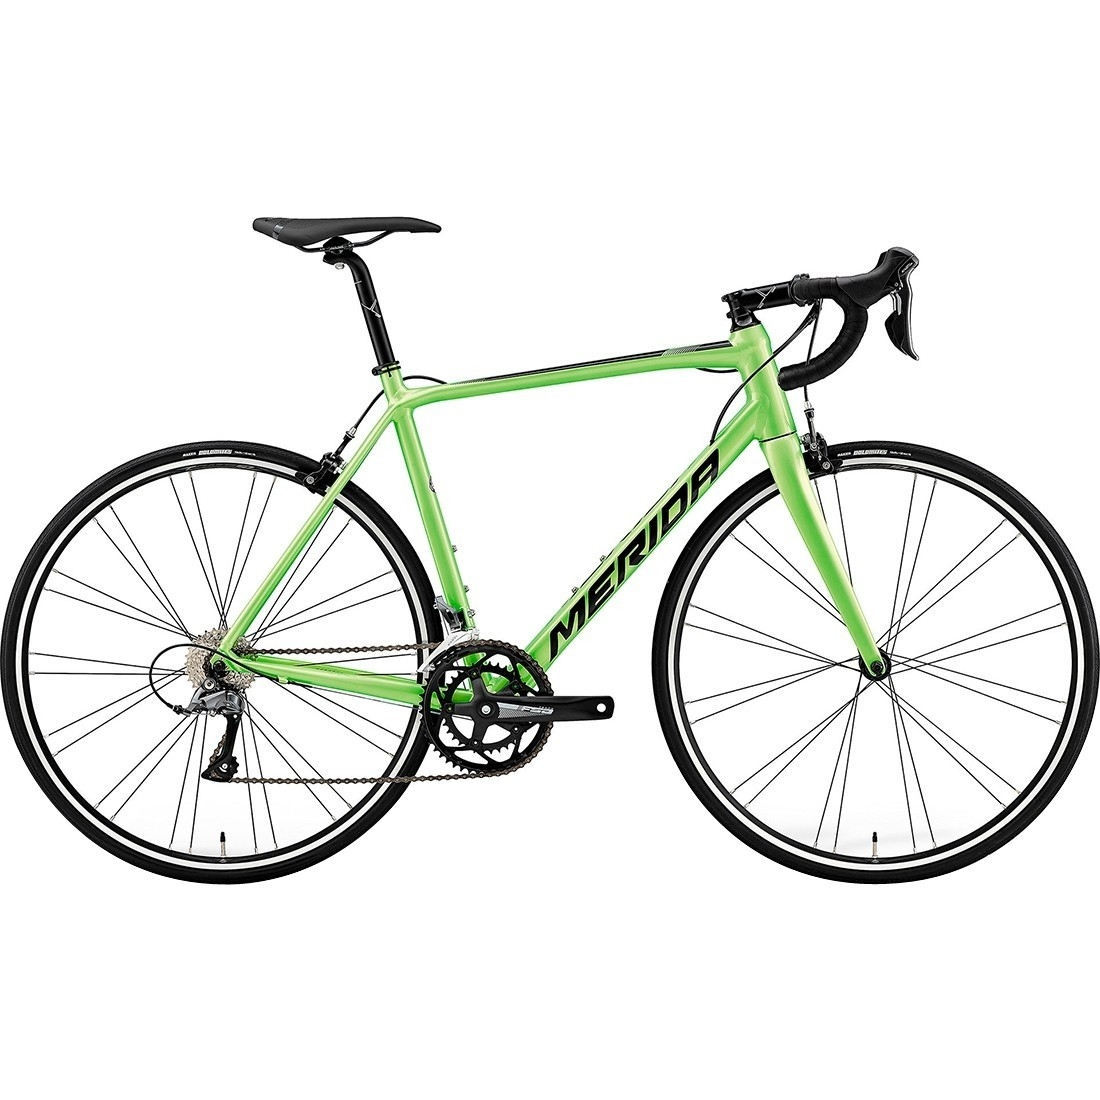 MERIDA Scultura 100 2019 Green / Black Road bike